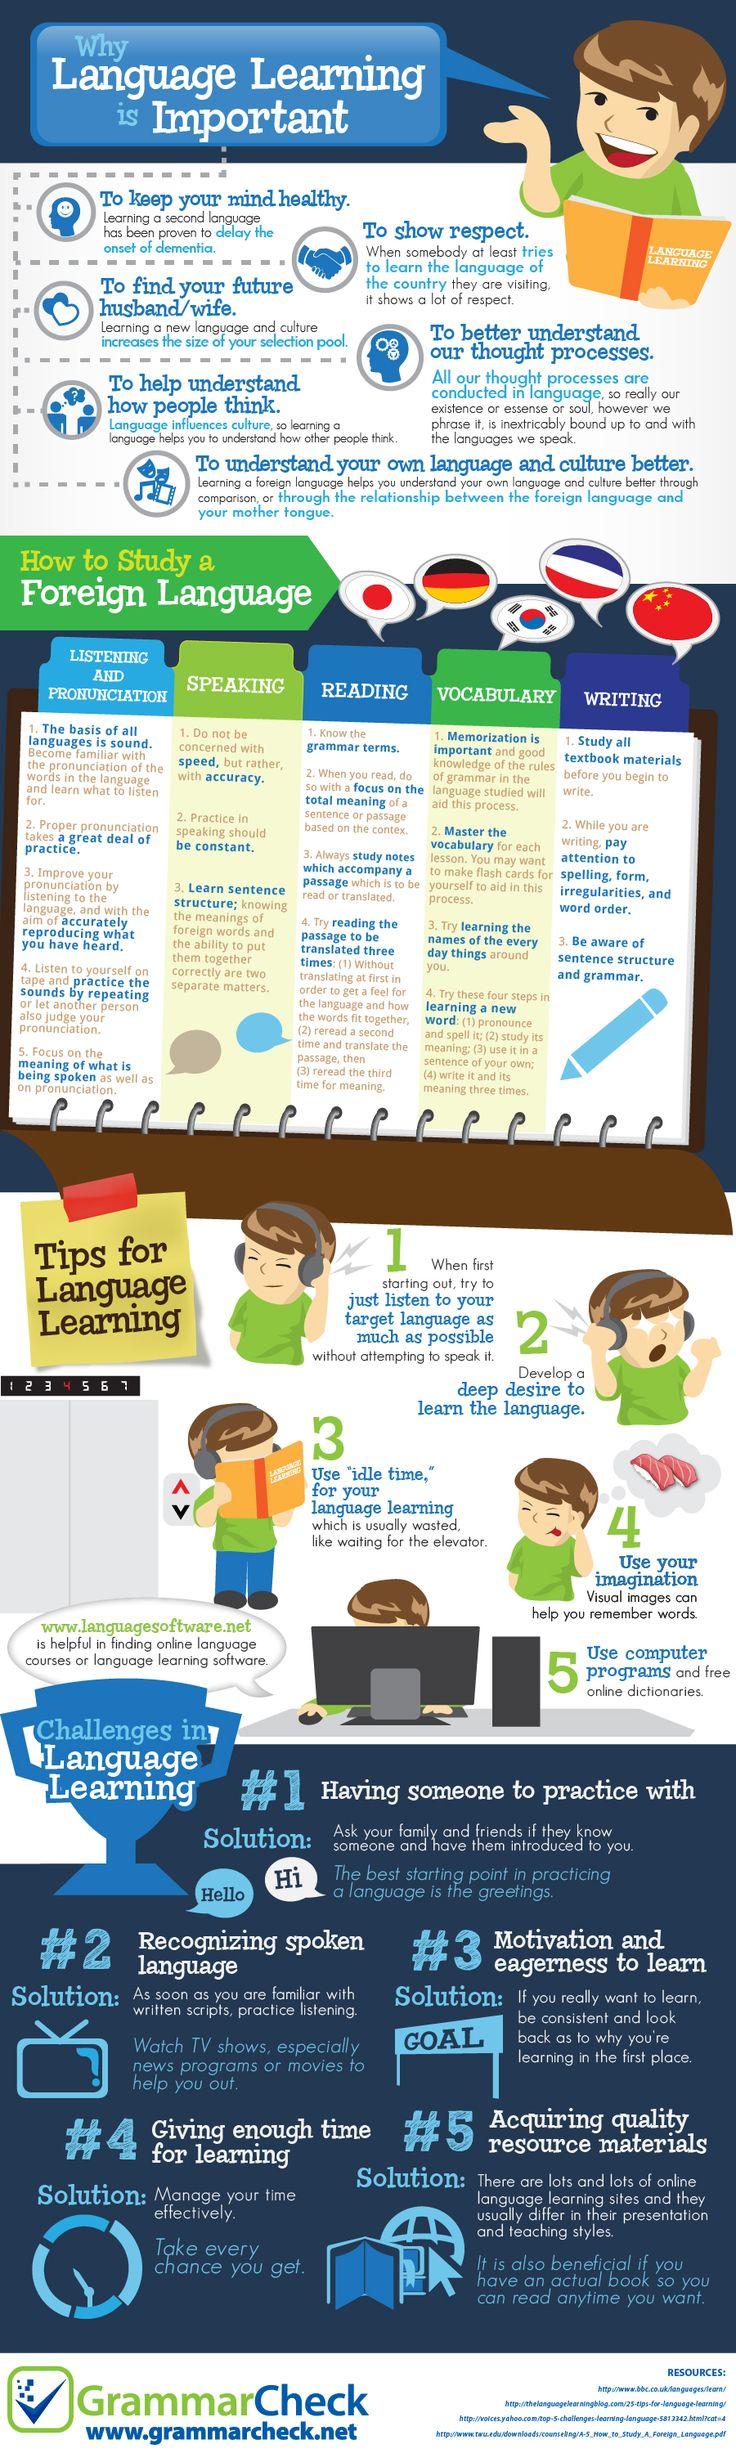 Why Language Learning is Important Infographic - http://www.uniquelanguages.com #languagetraining